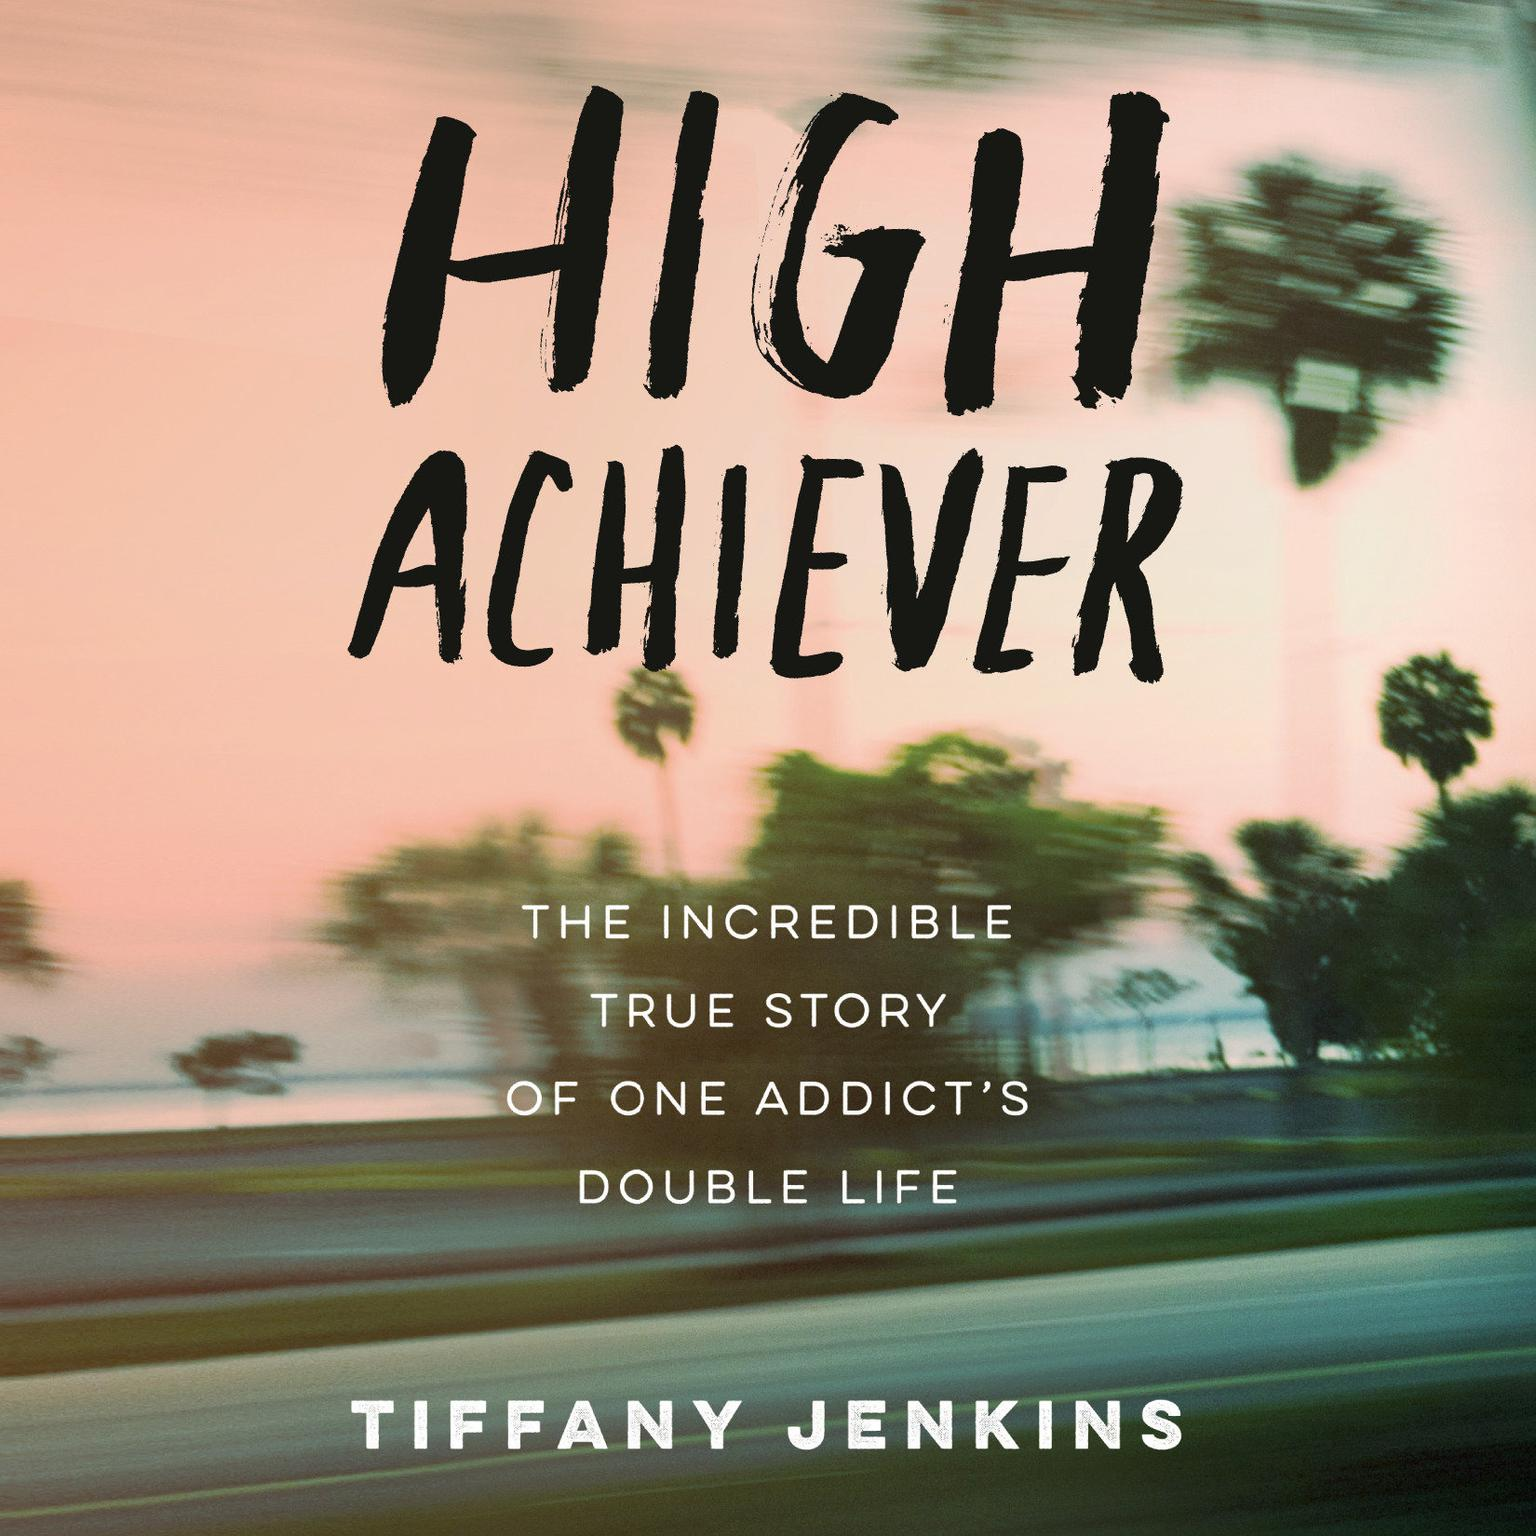 High Achiever: The Incredible True Story of One Addicts Double Life Audiobook, by Tiffany Jenkins